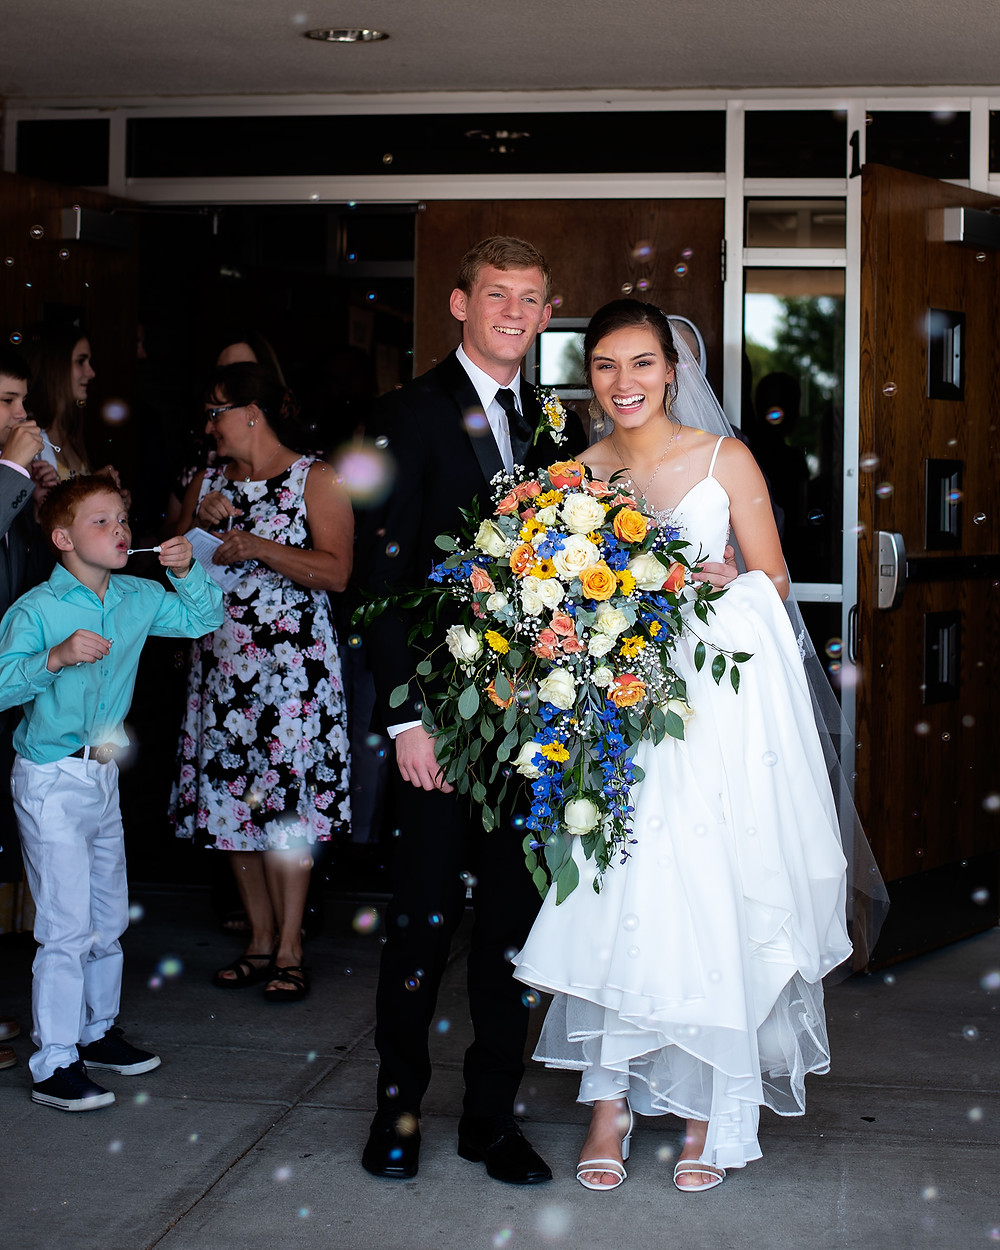 newly husband & wife walk out of church into a tunnel of family blowing bubbles